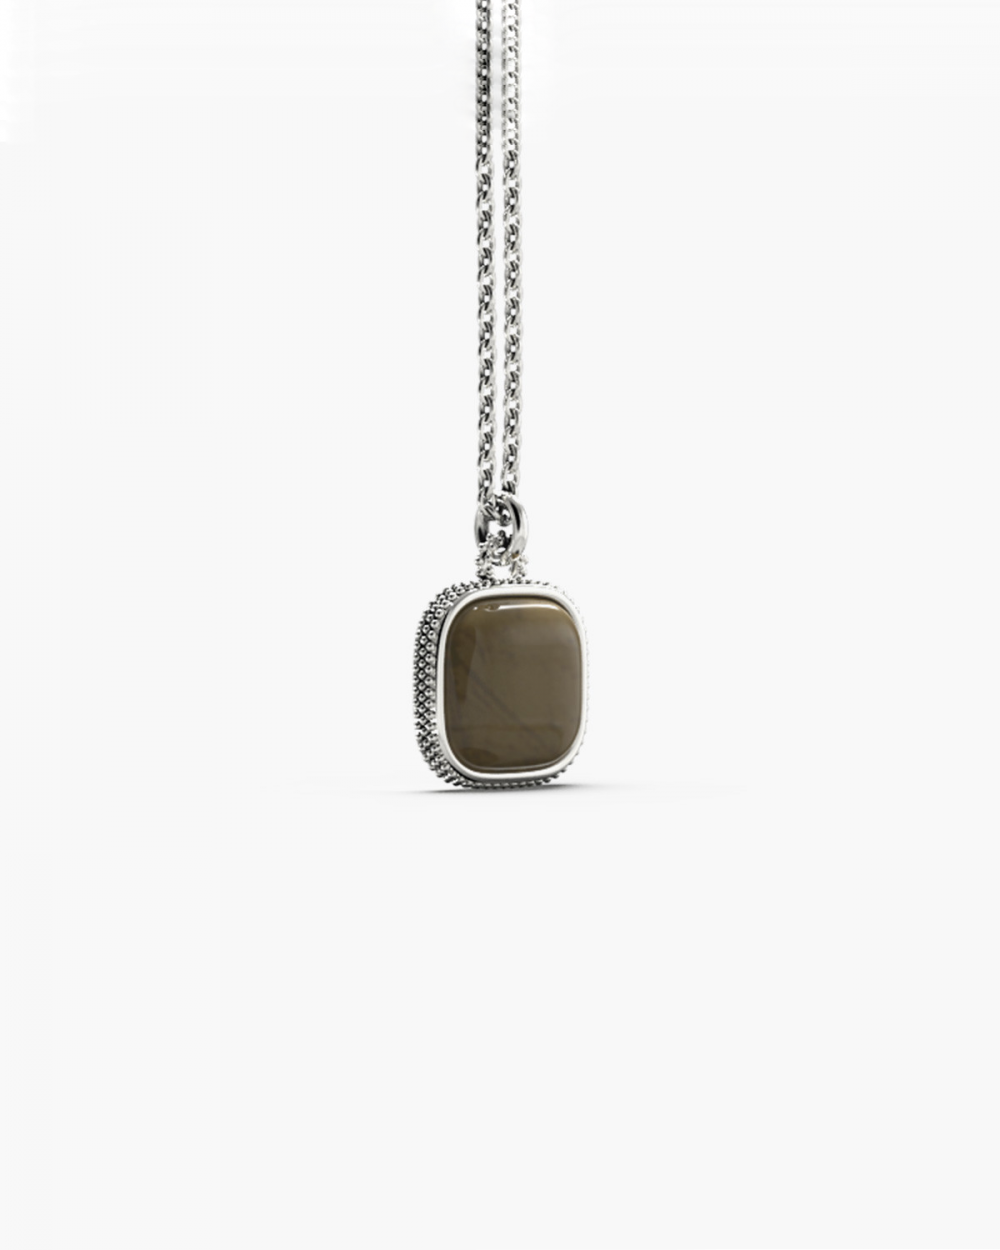 MYNOVE25 DOTTED SQUARE STONE PENDANT NOVE25